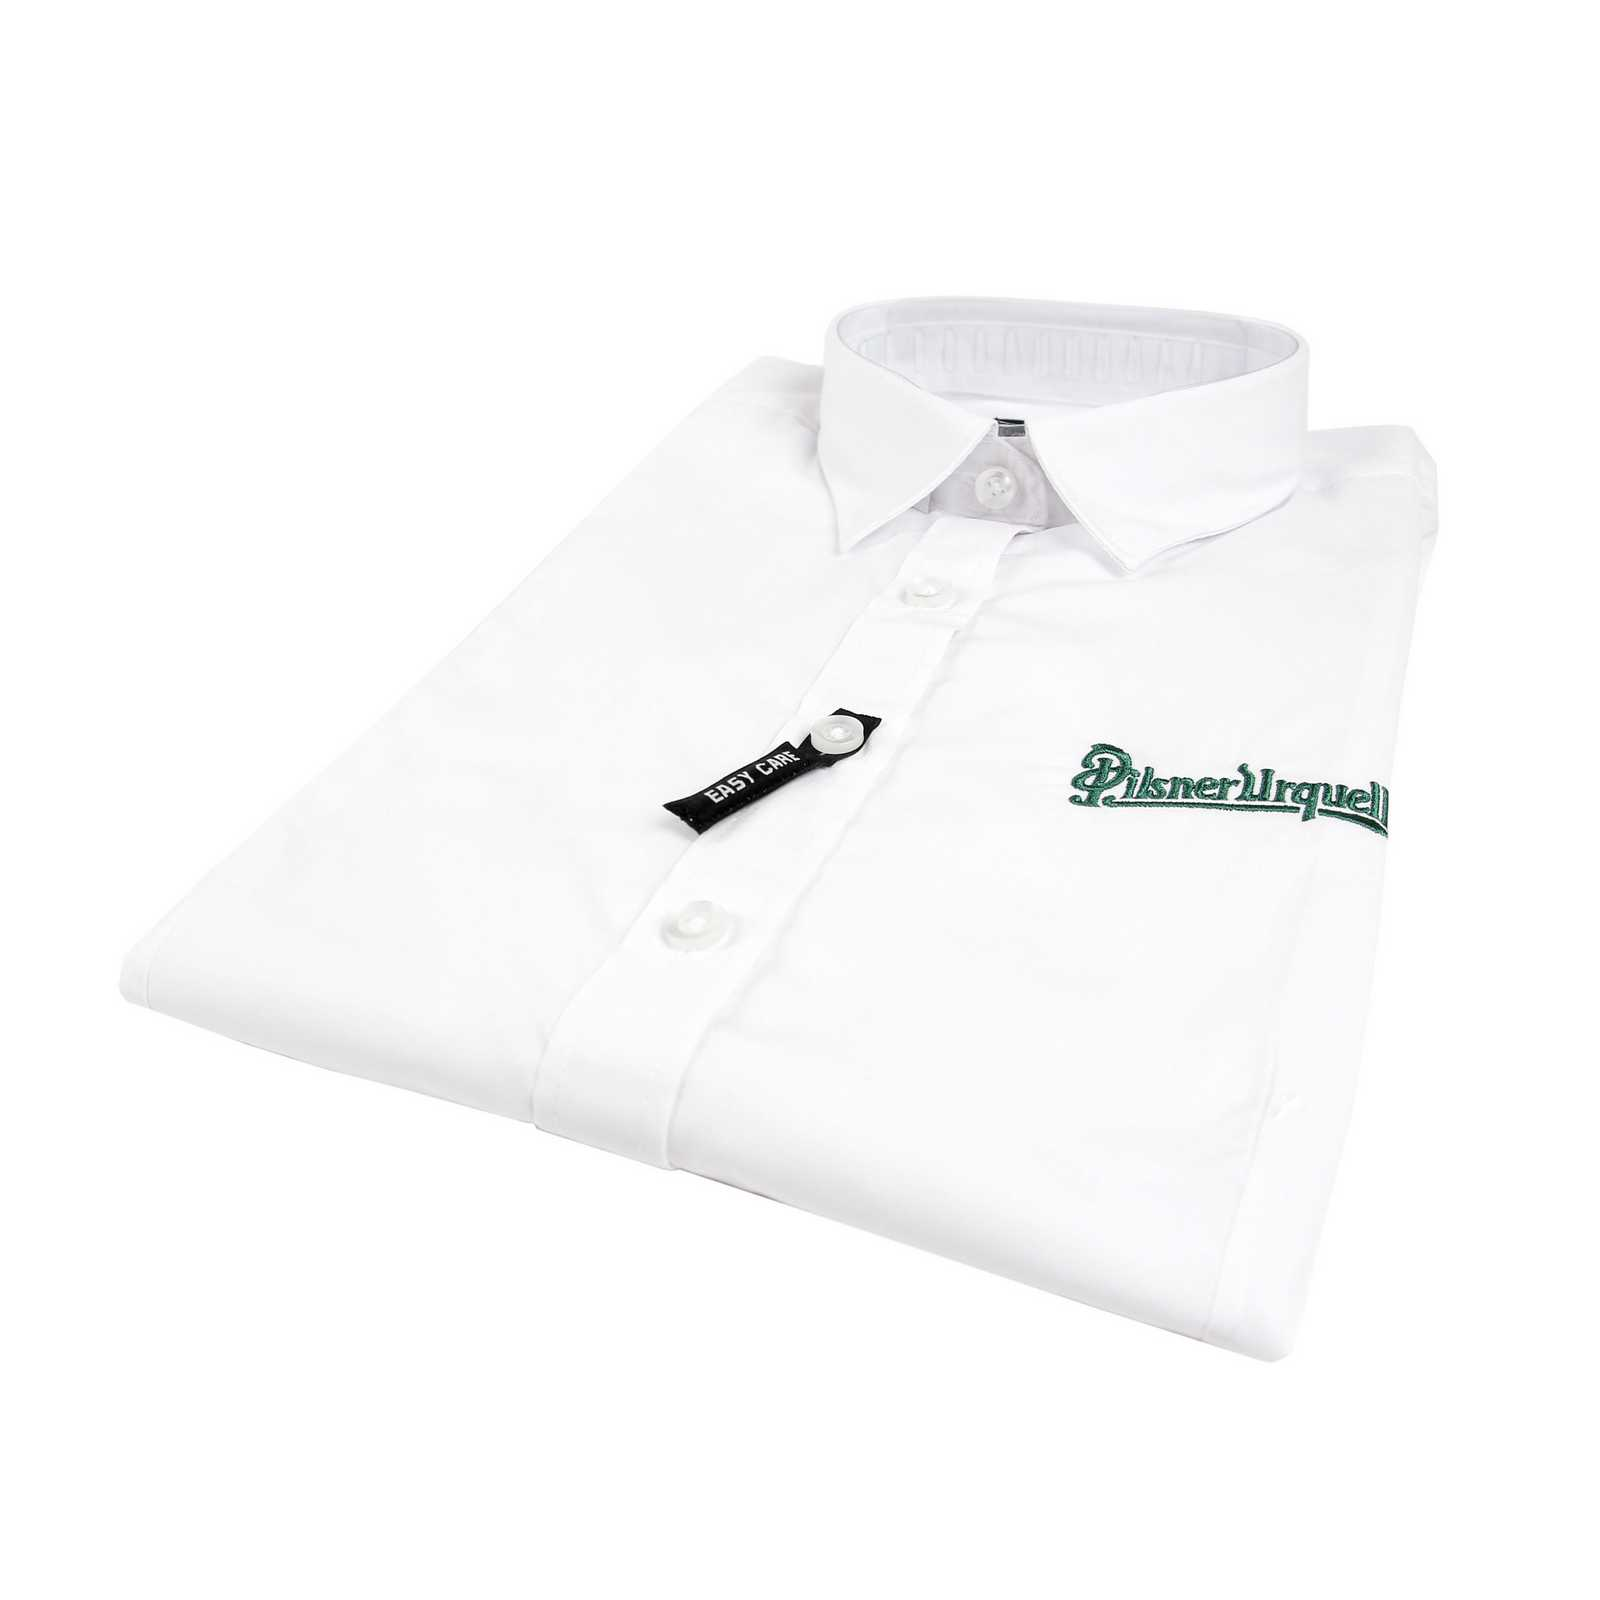 Men's Pilsner Urquell Long-Sleeved Shirt, White